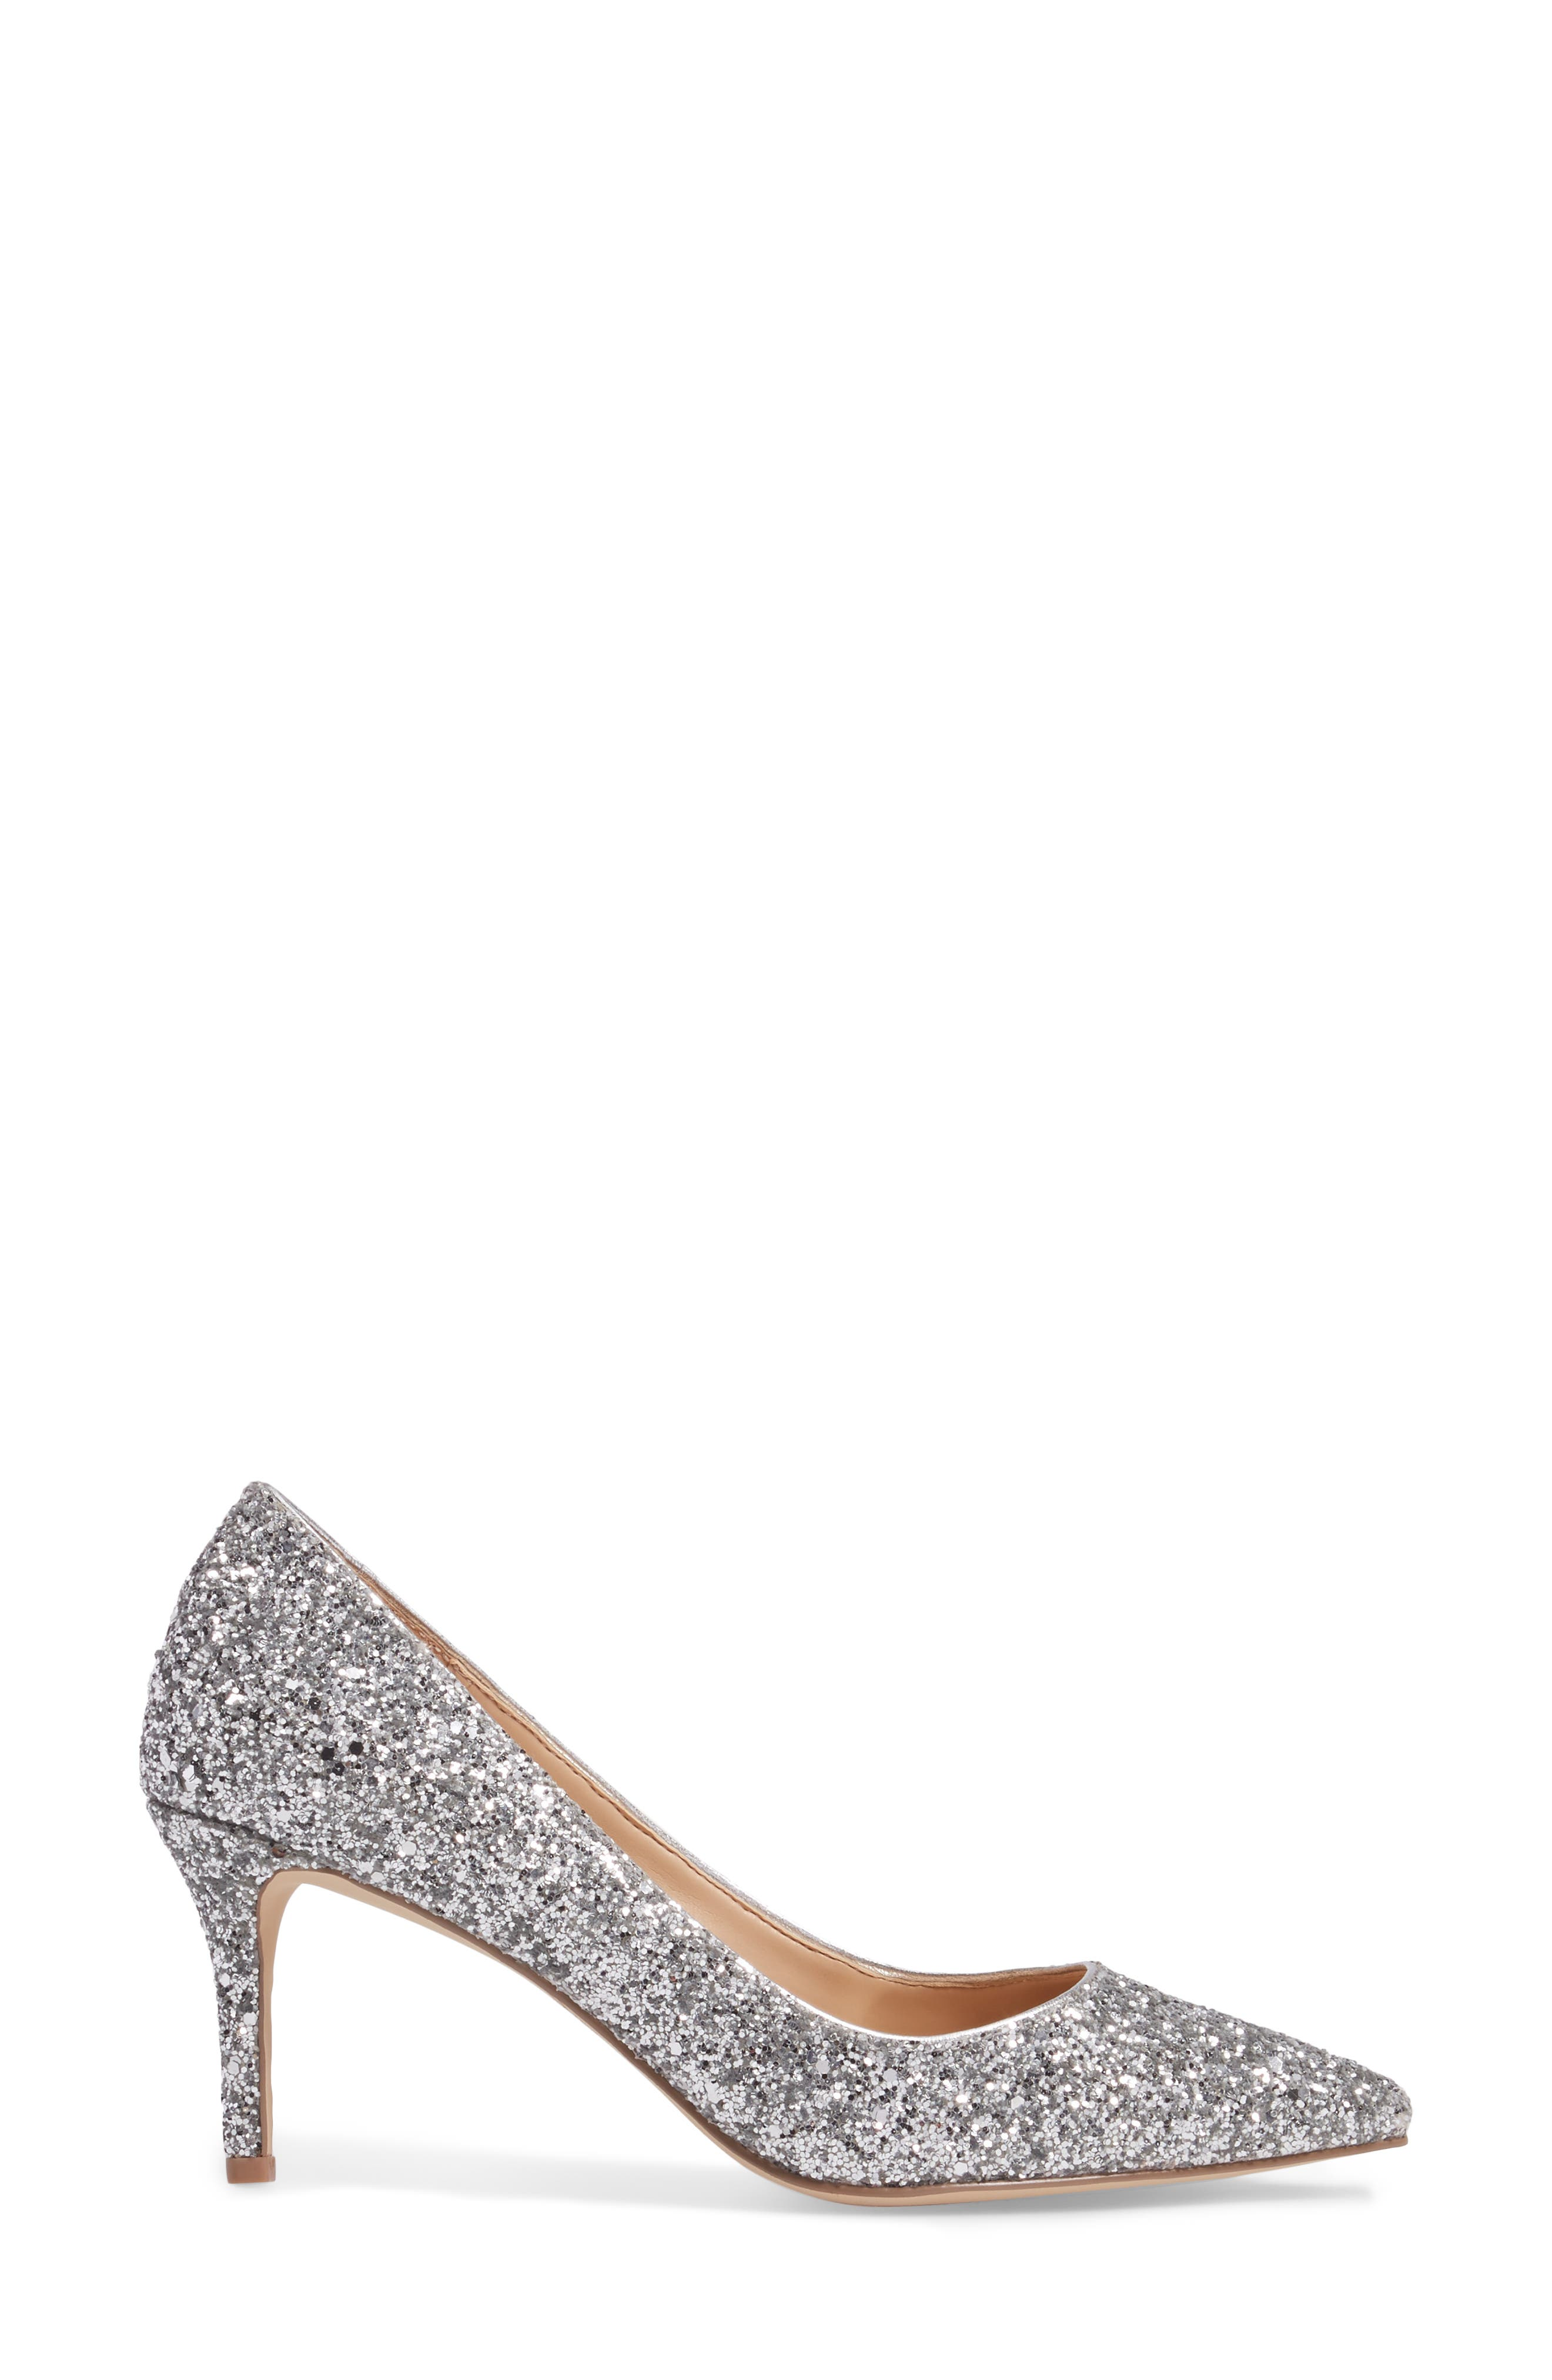 Lyla Glitter Pointy Toe Pump,                             Alternate thumbnail 3, color,                             Silver